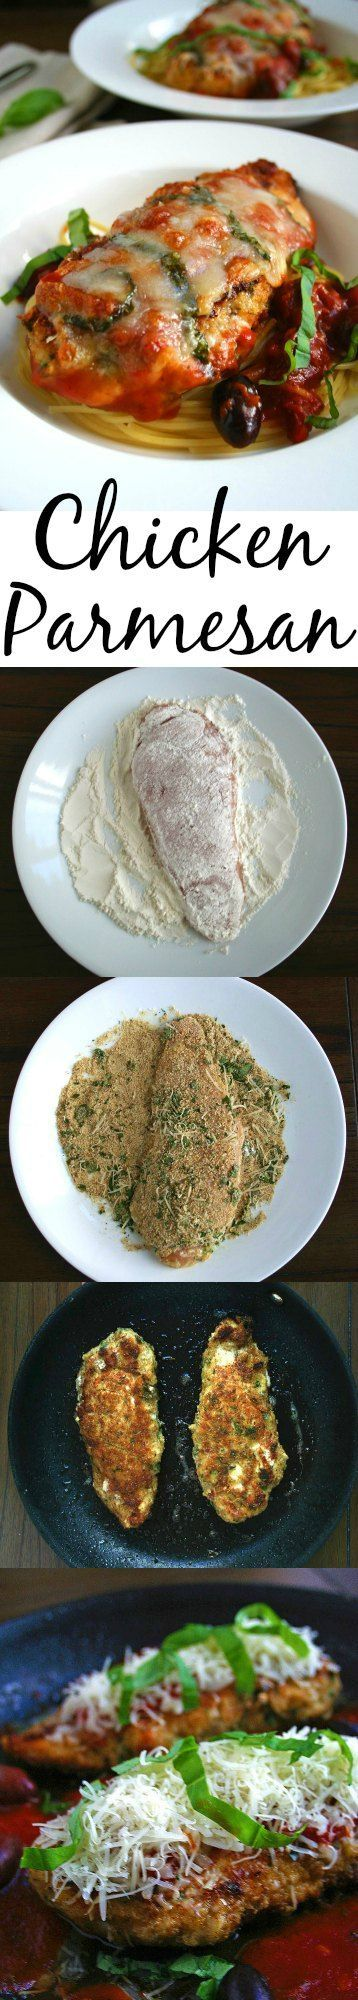 Chicken Parmesan for two, including a step-by-step recipe with pictures to show you exactly how to make this comforting & flavorful date night dish. | strawmarysmith.com